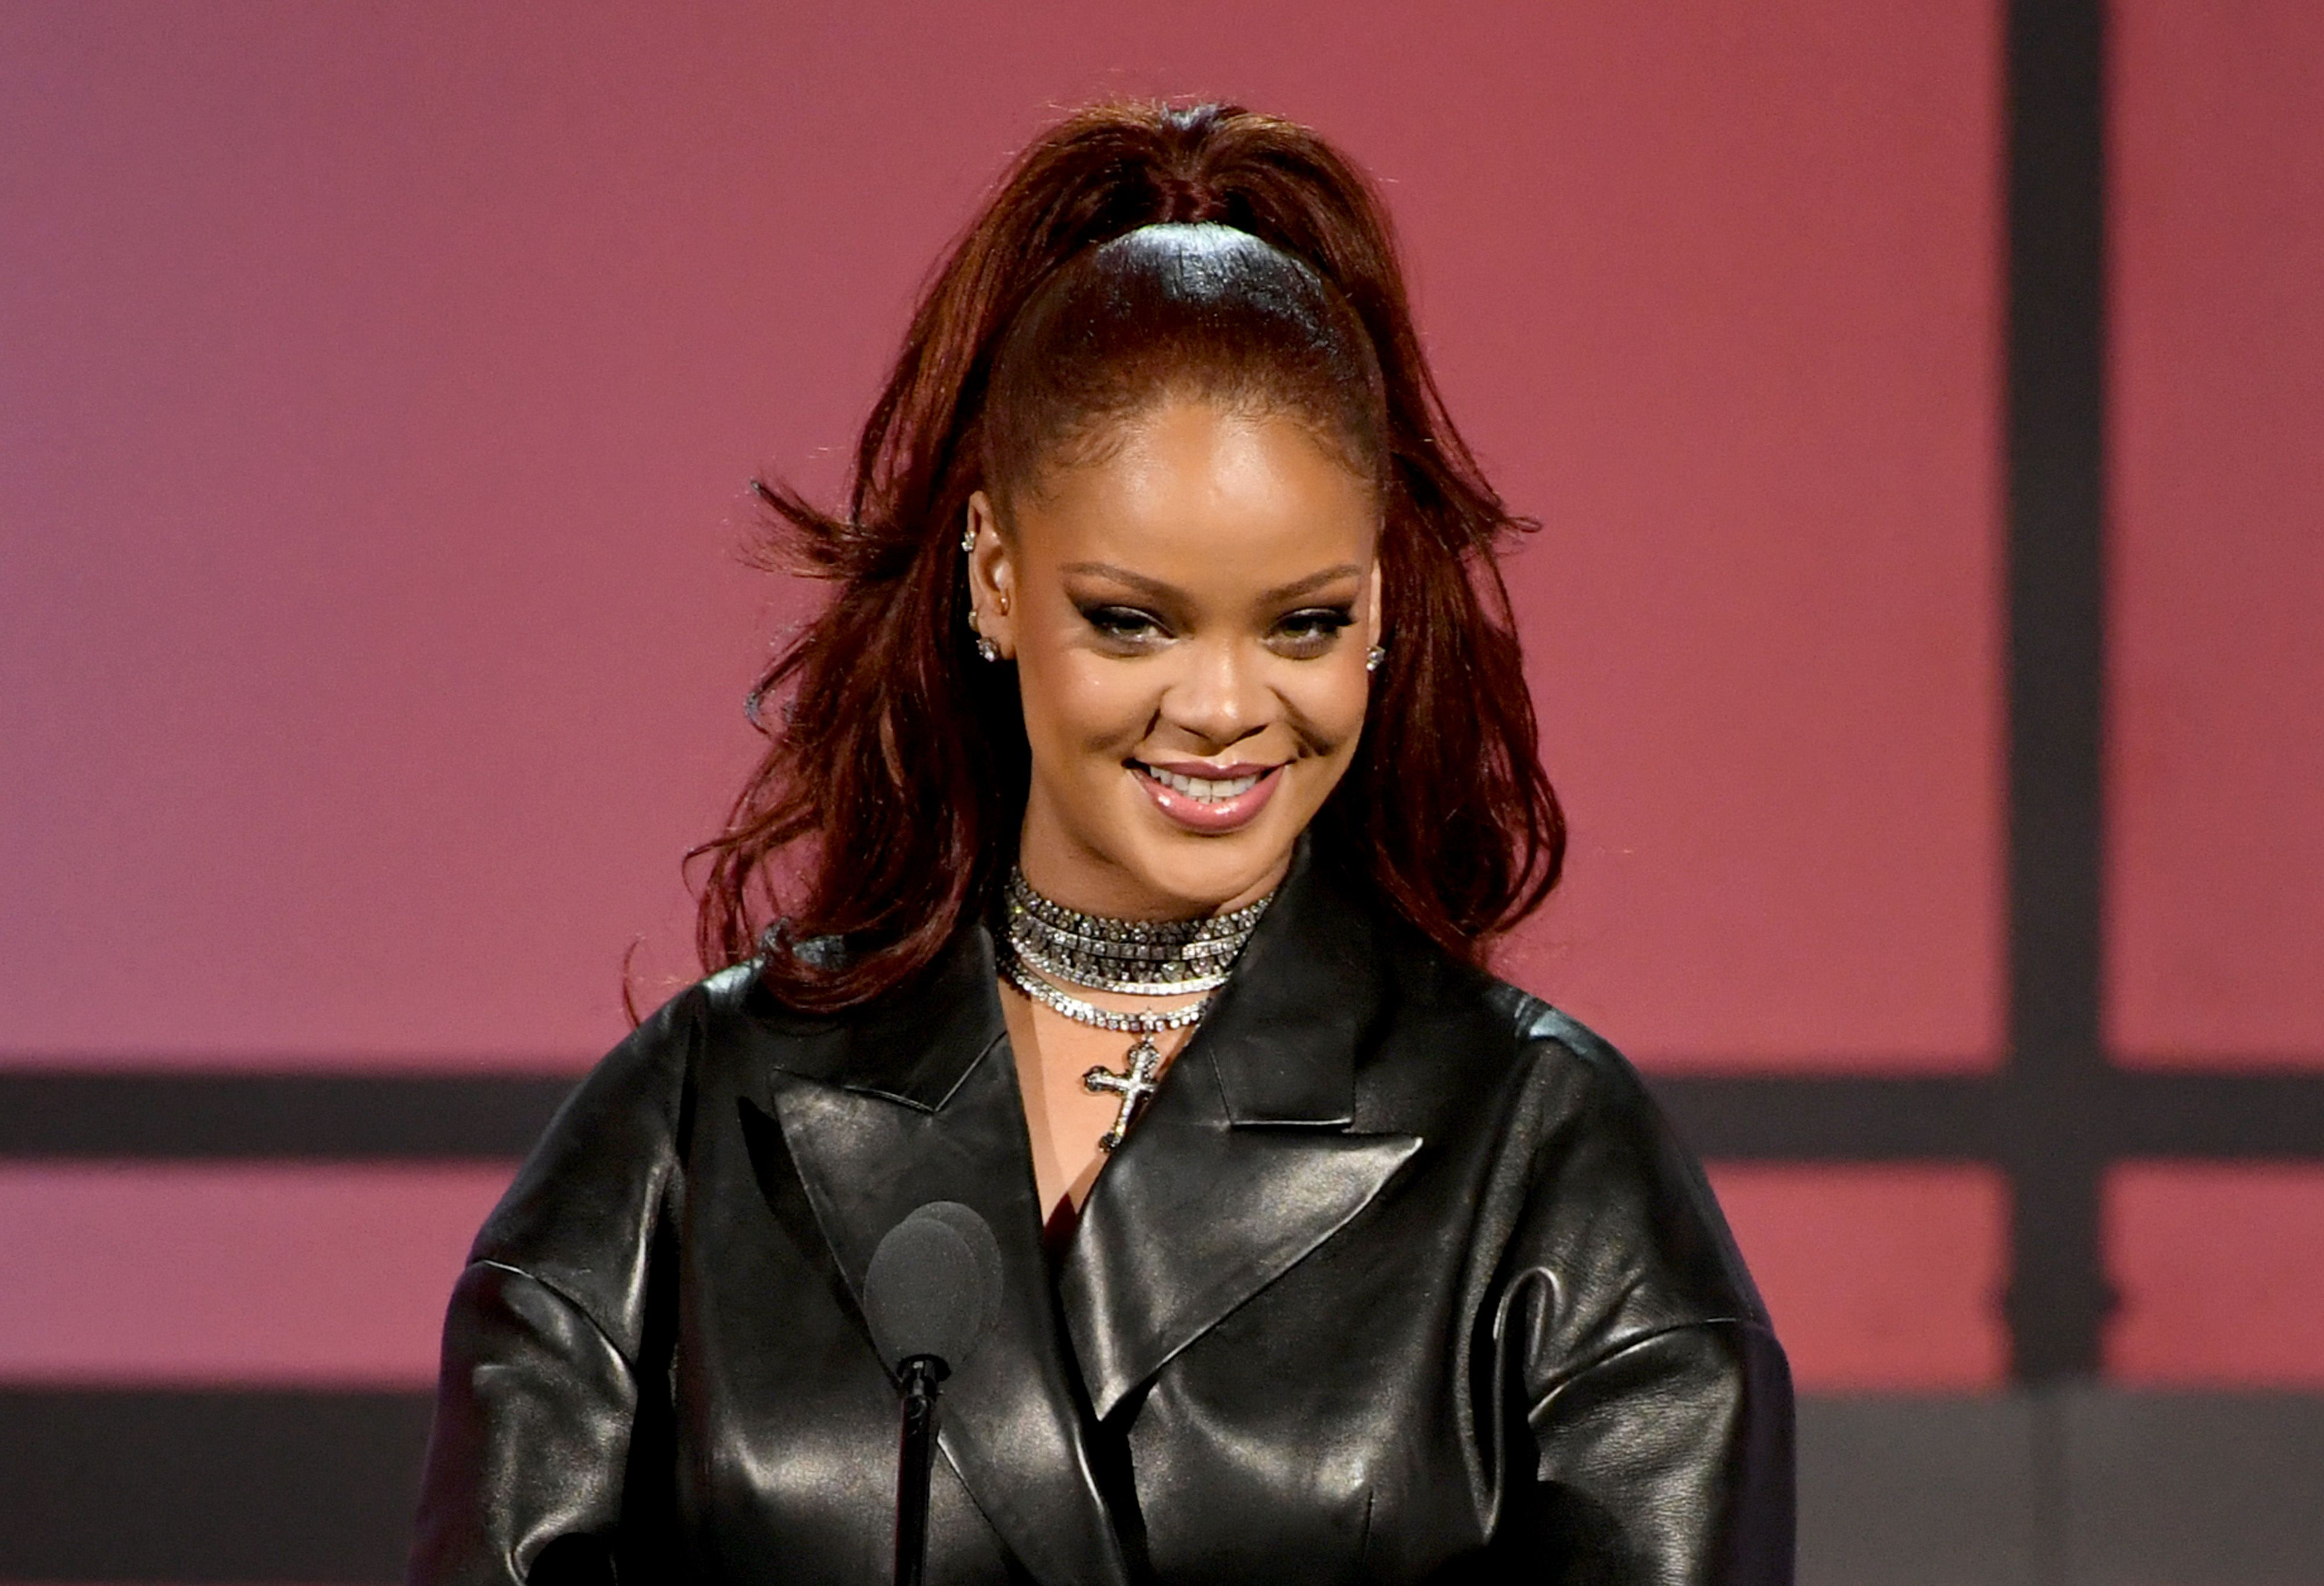 Rihanna's Red Hair at the BET Awards Has Fans Speculating About New Music